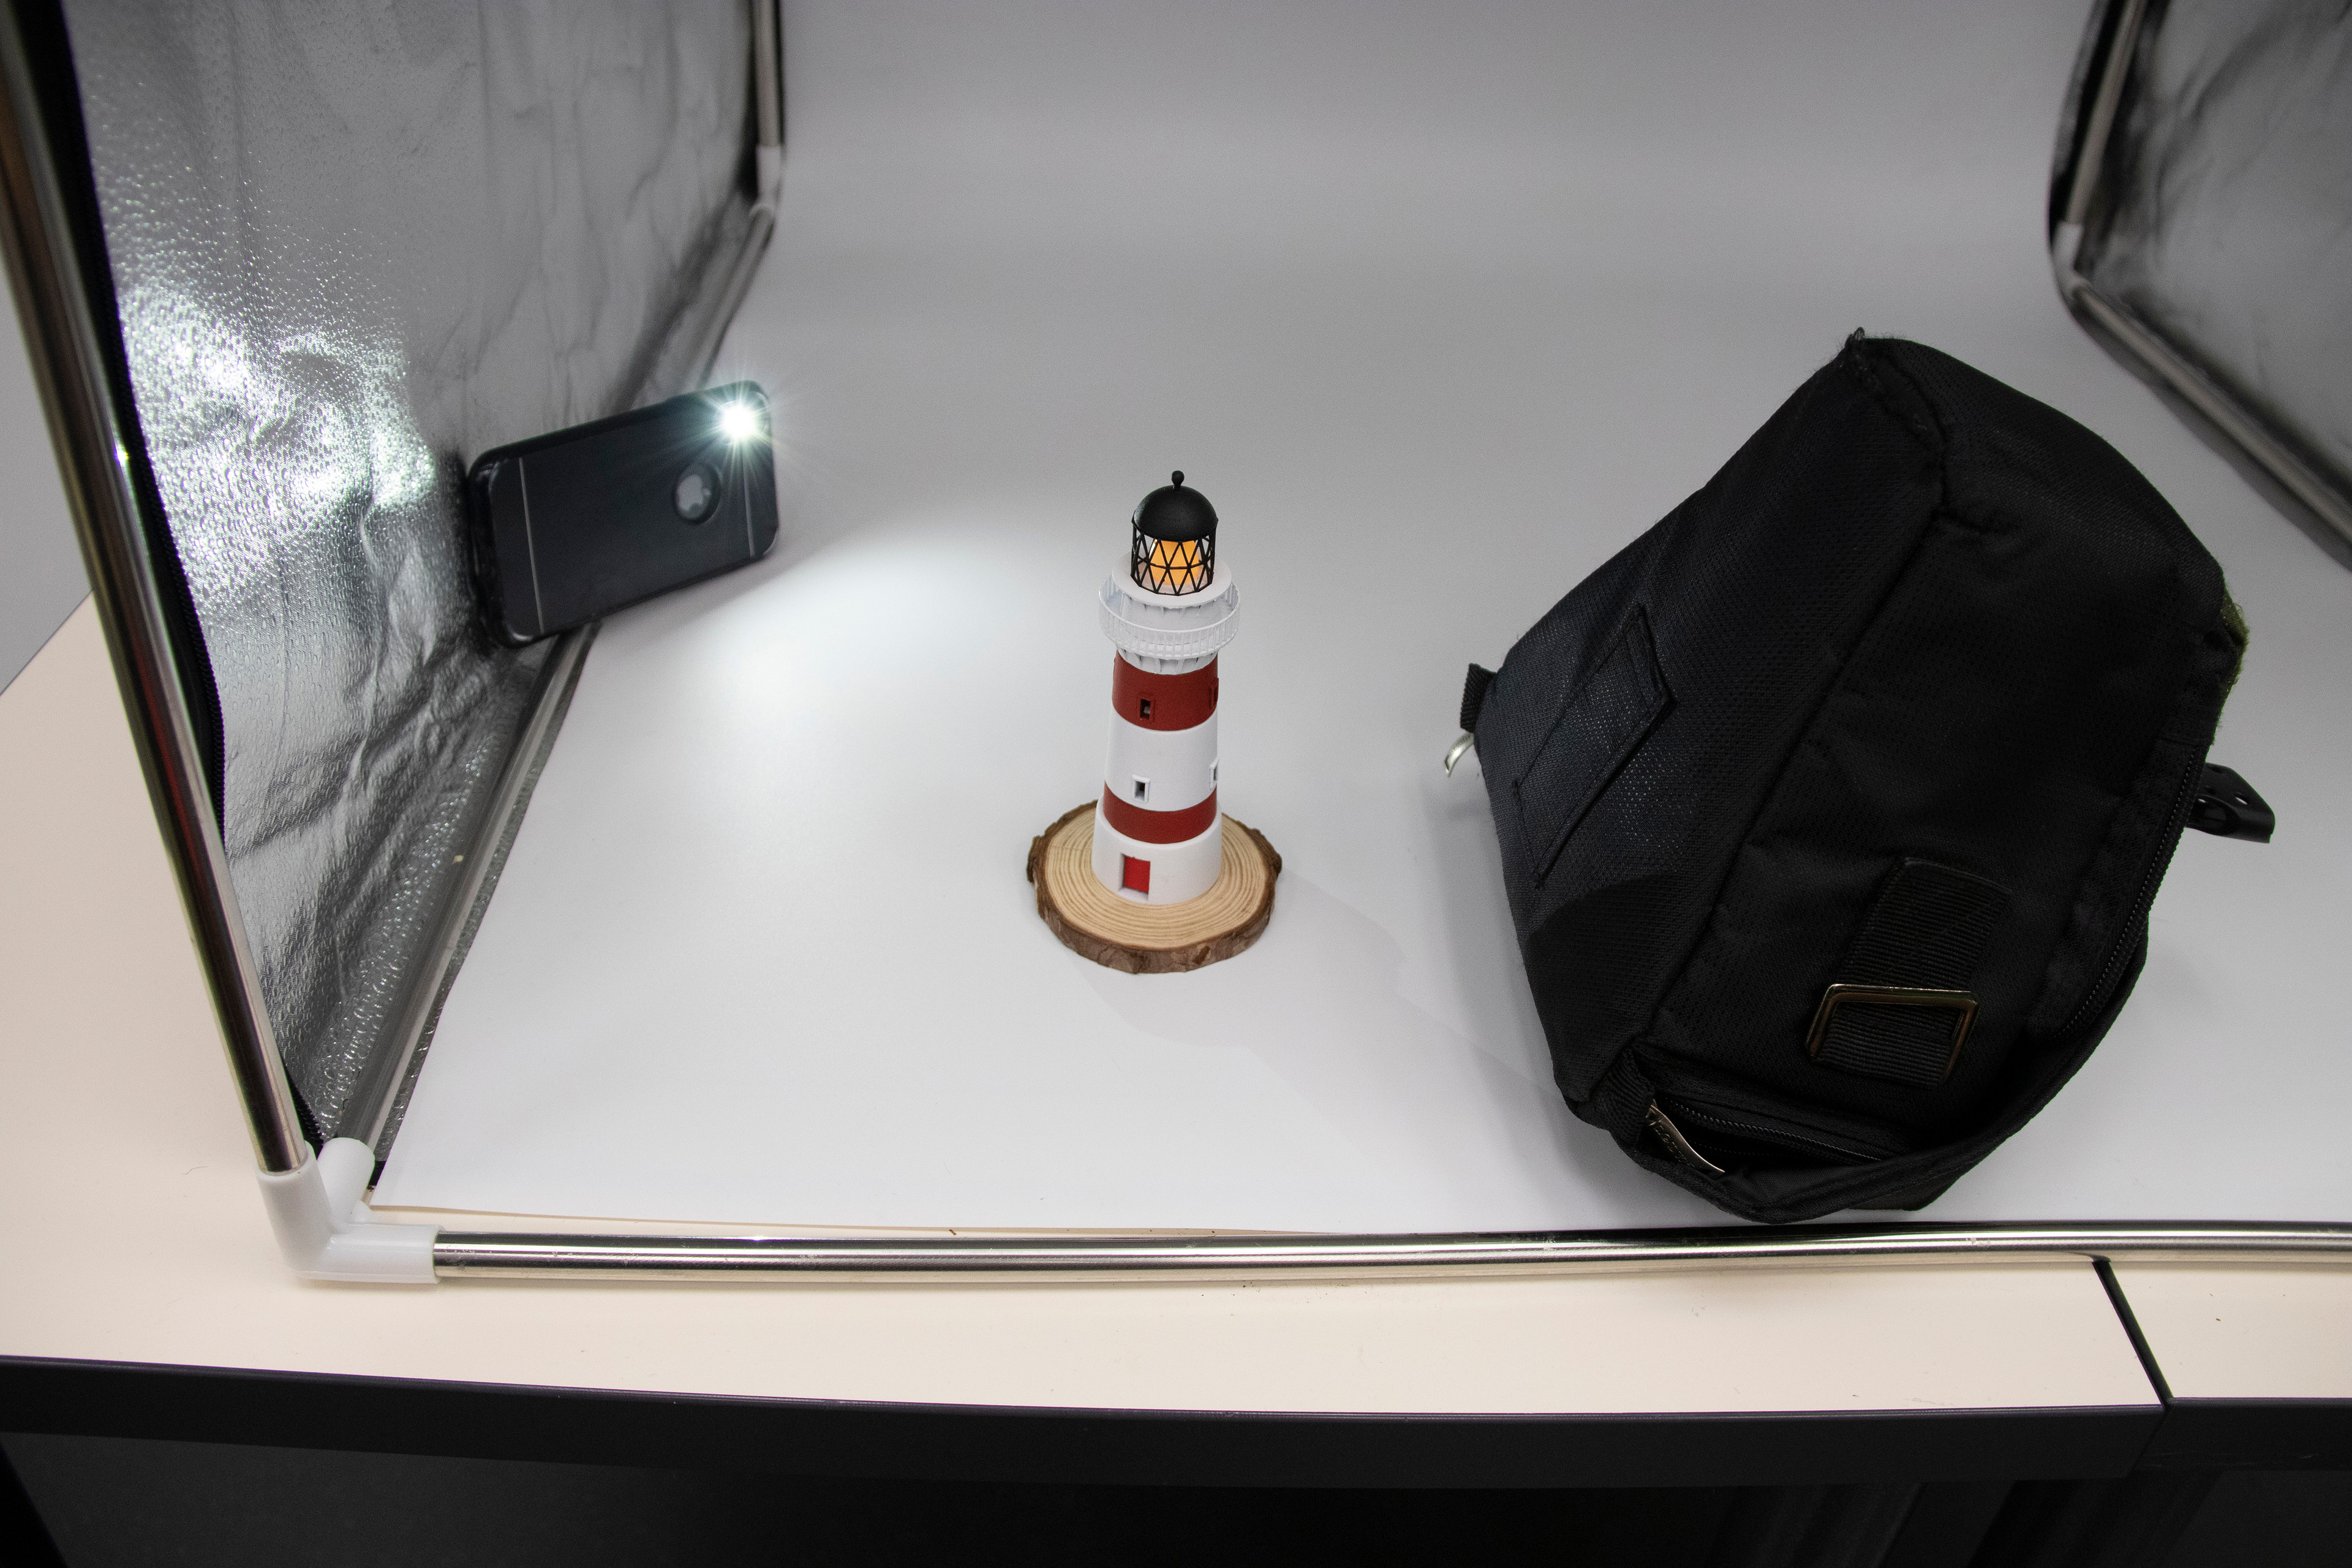 Improvised photoshoot at Auckland Library